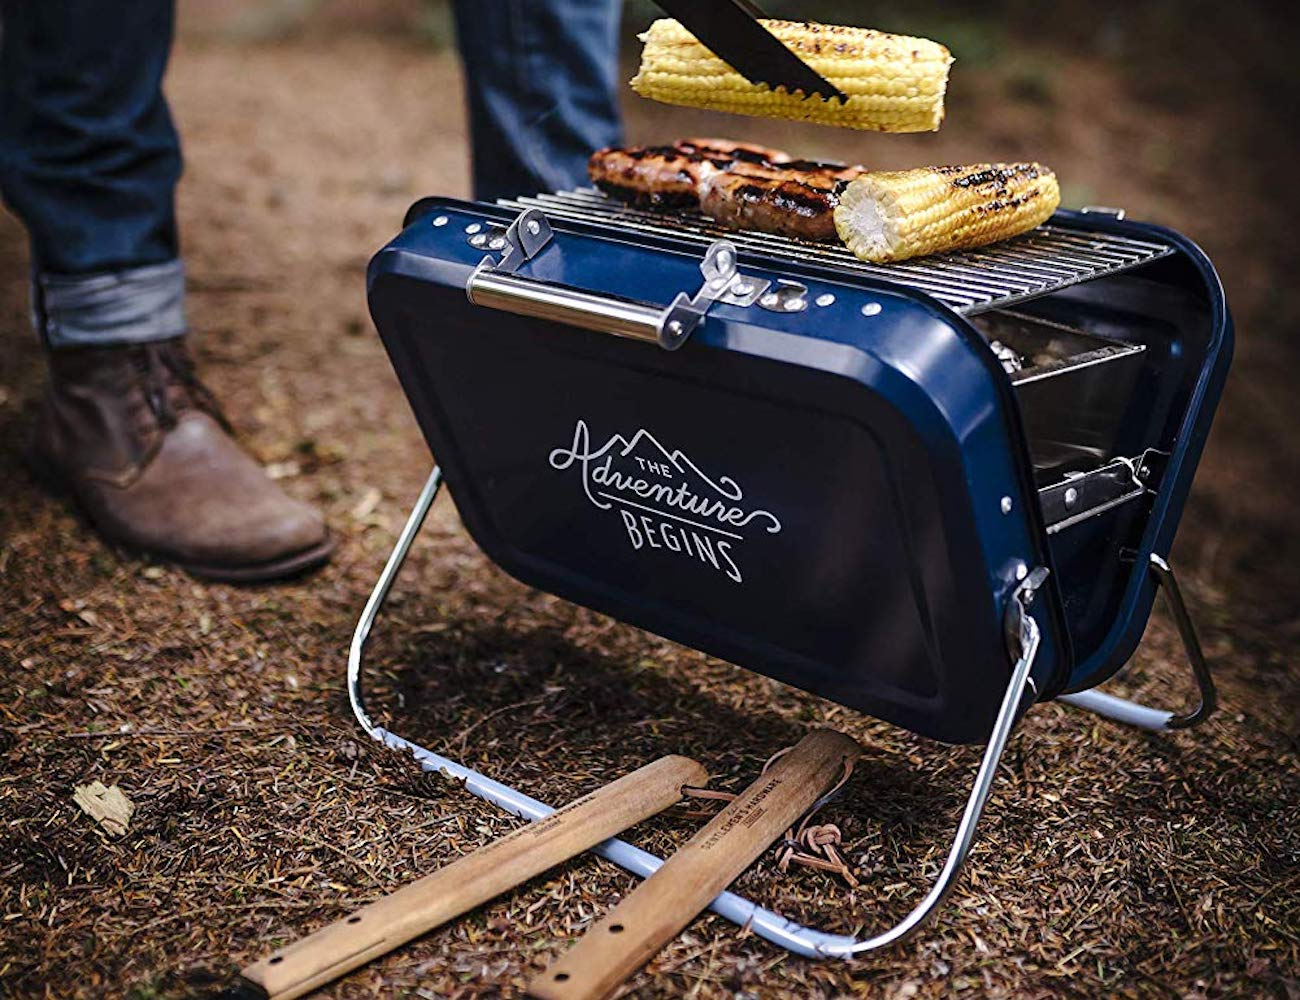 Gentlemen's Hardware Portable Barbecue Compact Coal Grill has a convenient carry handle